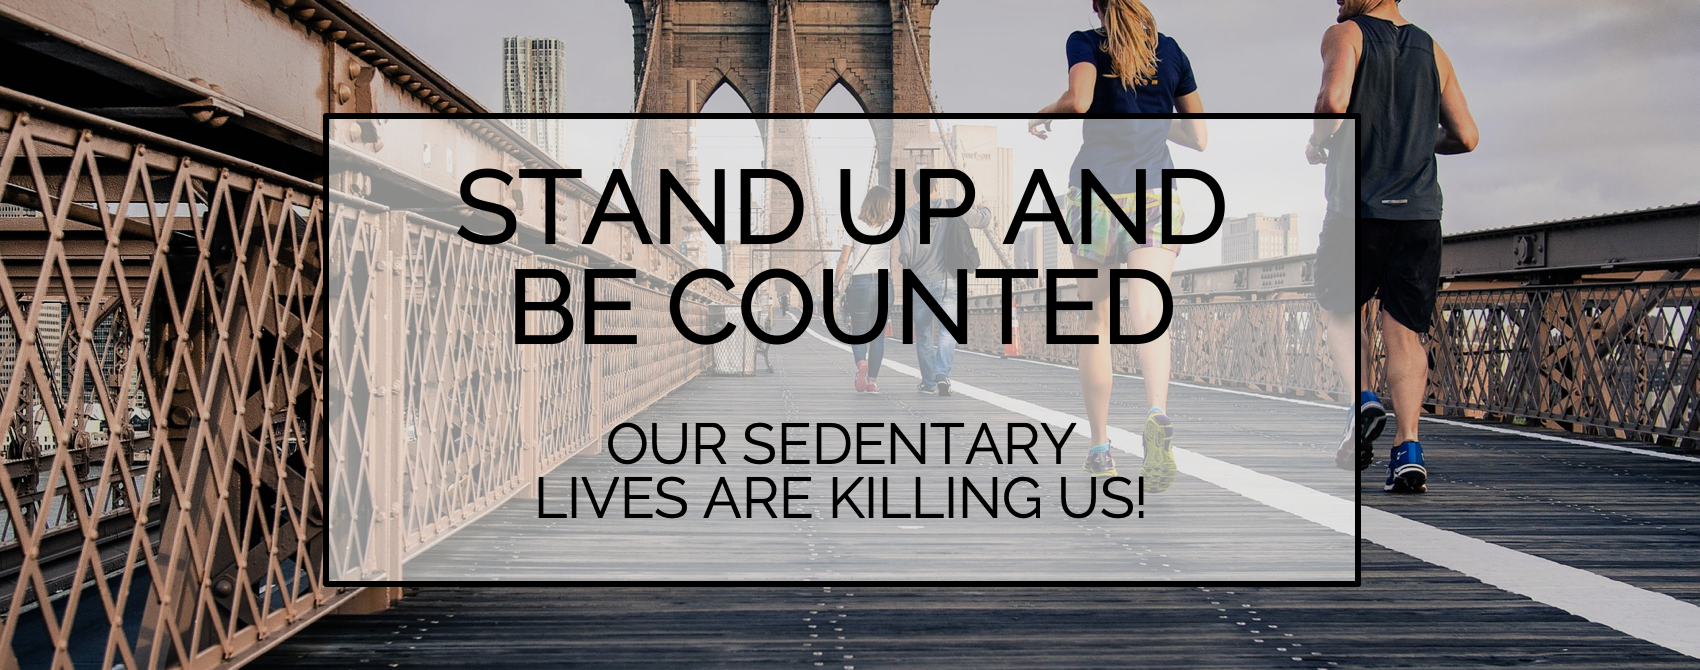 BLOG | Stand Up And Be Counted - Our Sedentary Lives Are Killing Us!